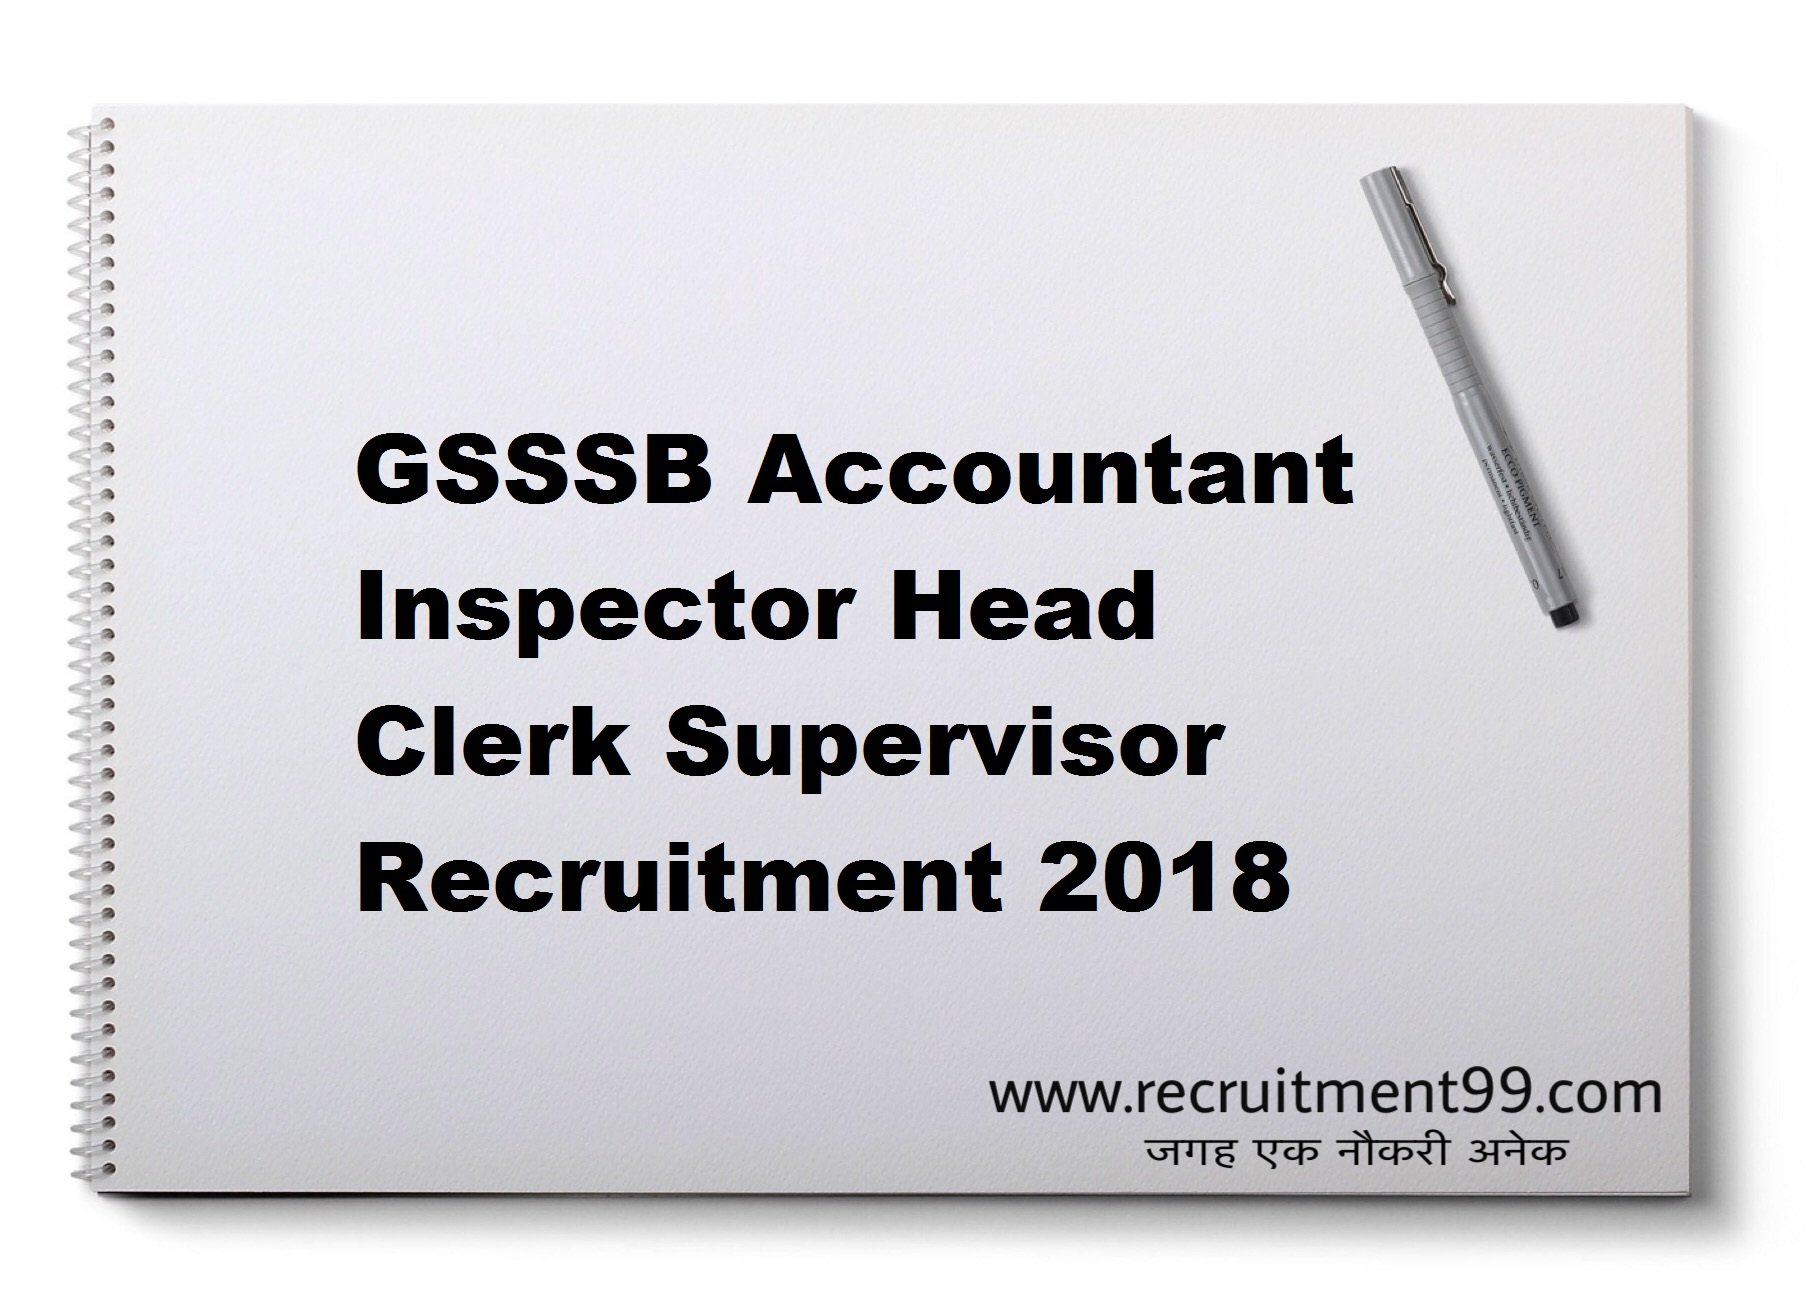 GSSSB Accountant Inspector Head Clerk Supervisor Recruitment Admit Card Result 2018